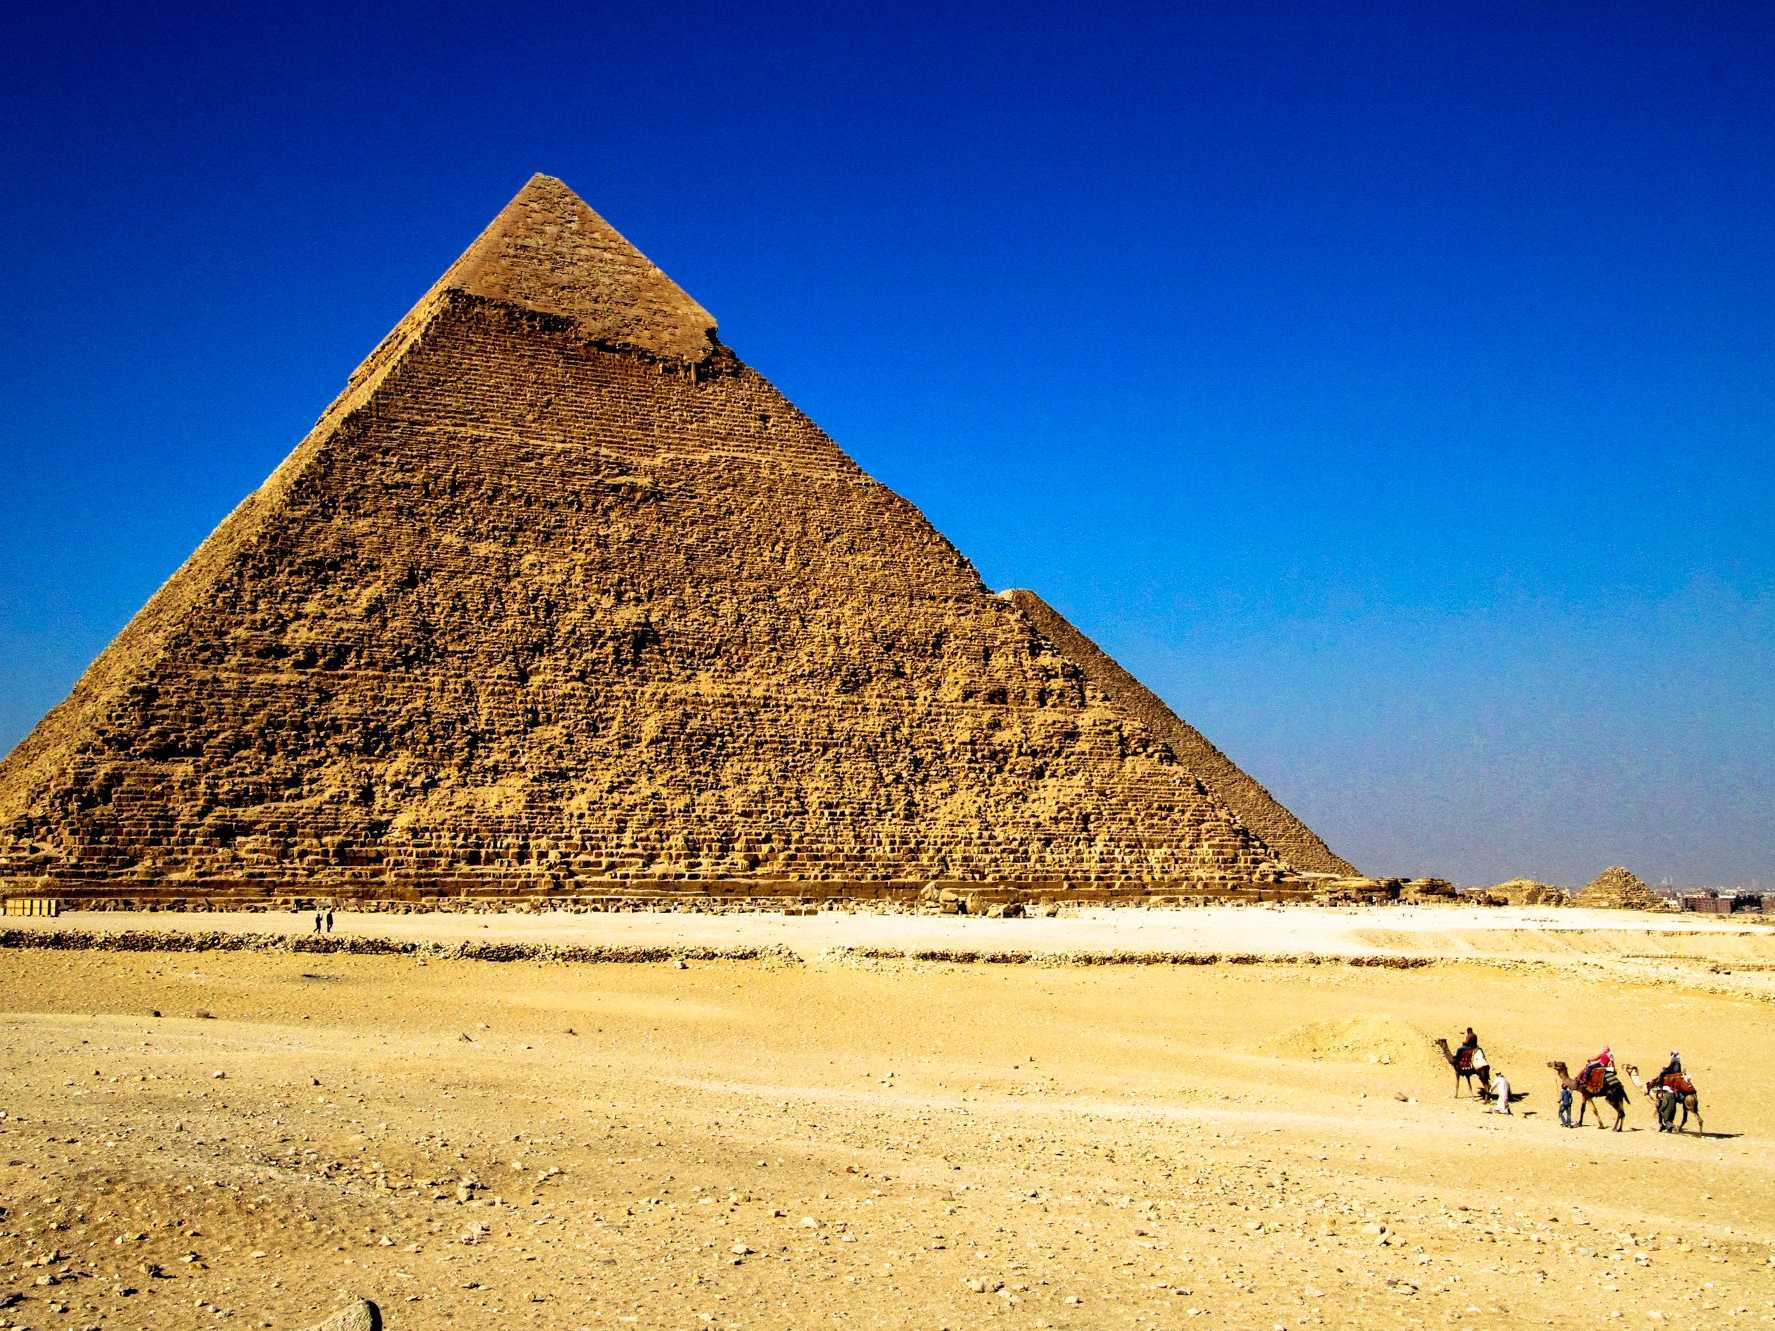 Marvel at the Great Pyramid of Giza outside Cairo, Egypt.